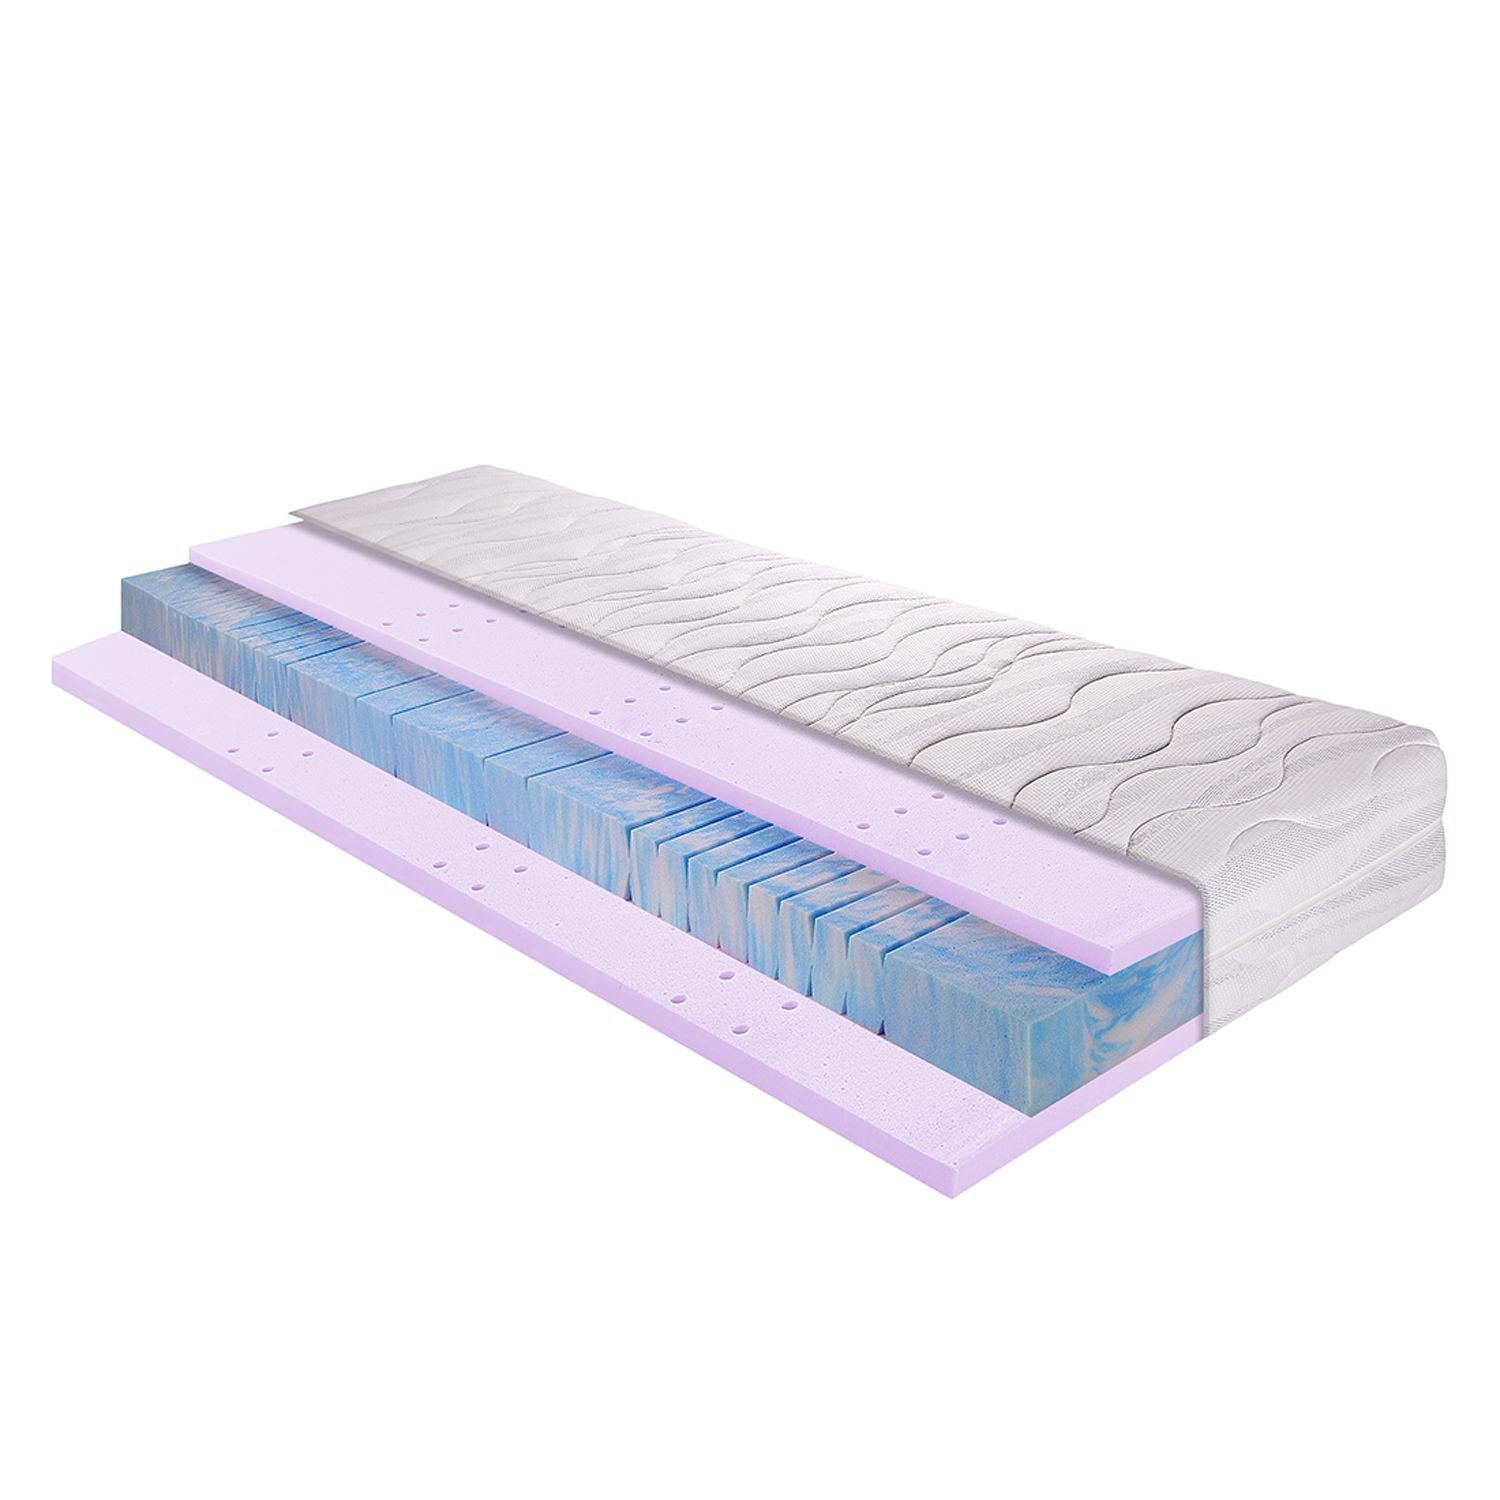 matelas en gel et mousse froide 7 zones sleep gel 3 90 x 200cm d2 jusqu 39 80 kg breckle par. Black Bedroom Furniture Sets. Home Design Ideas